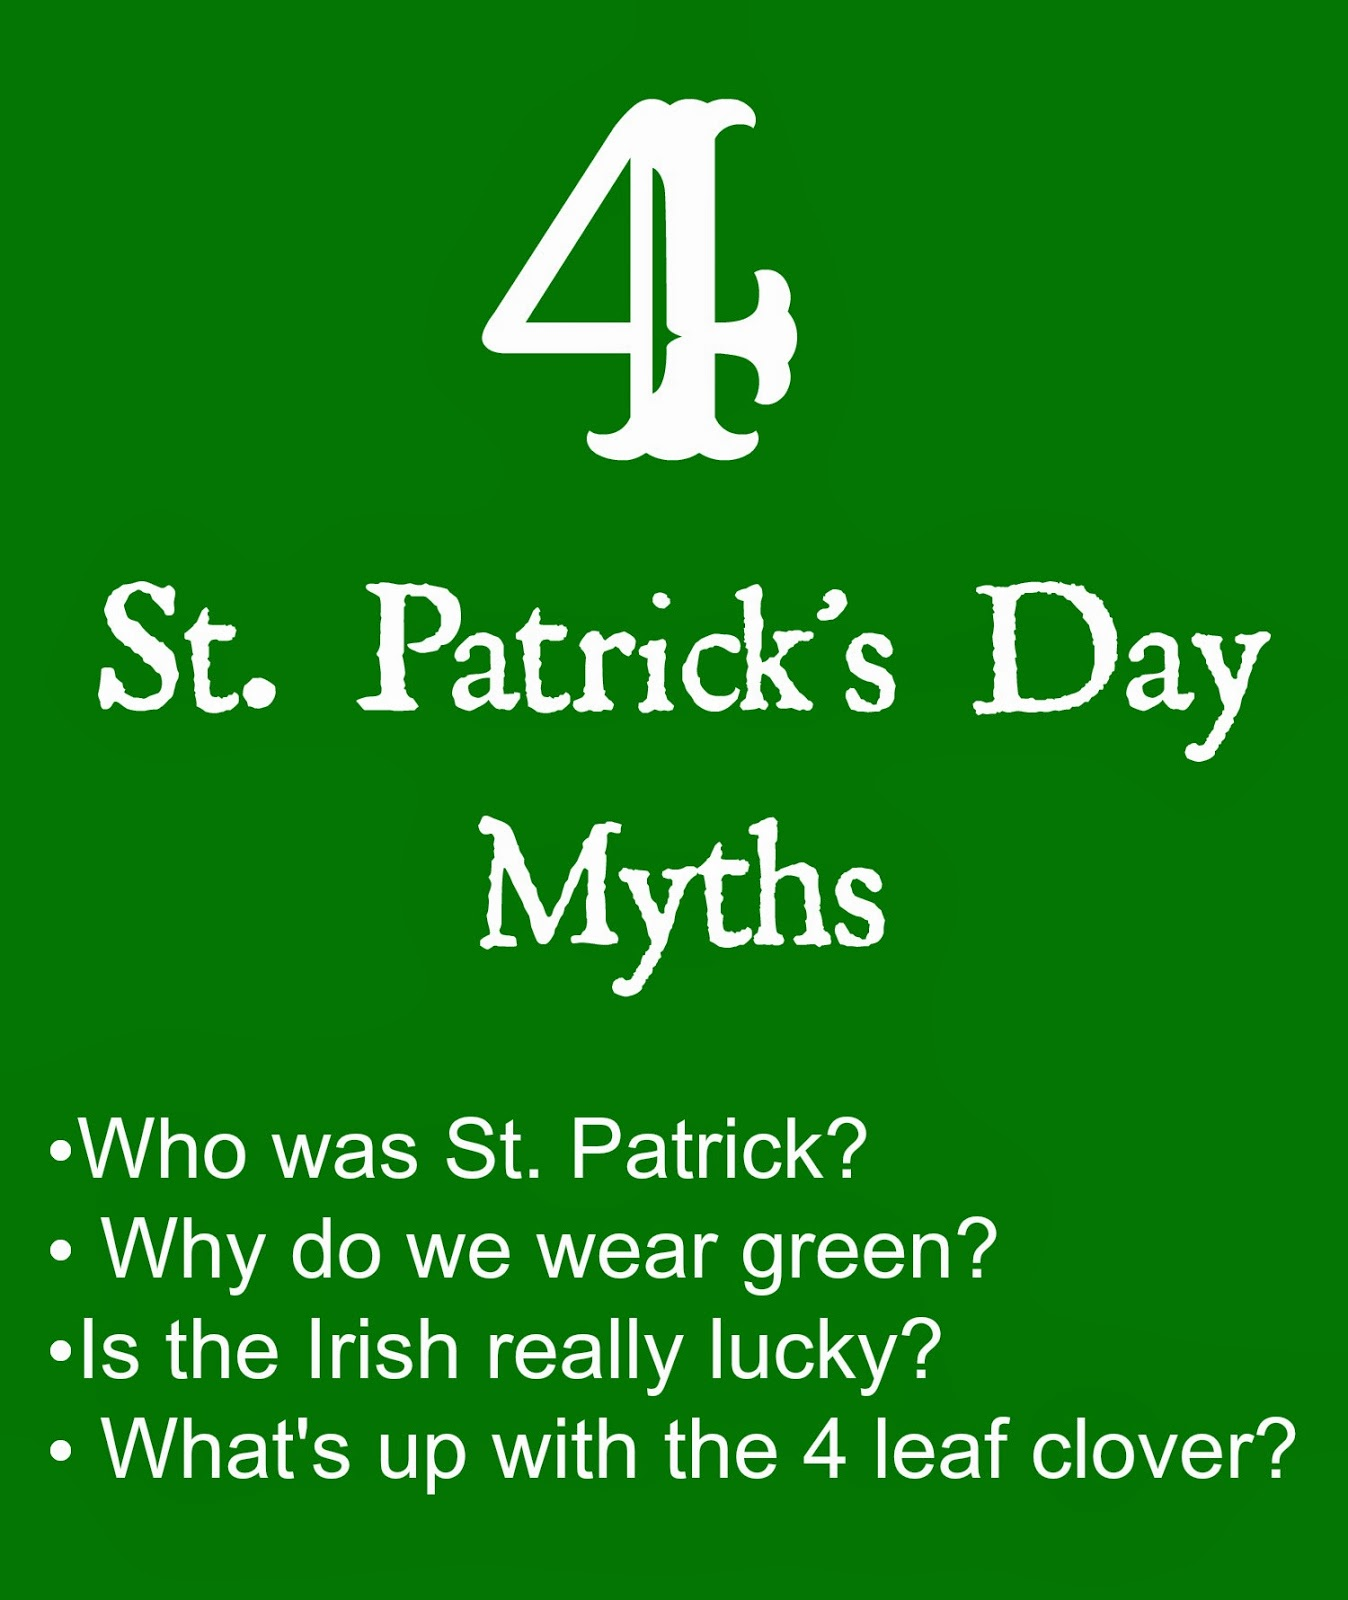 St. Patrick's Day Myths